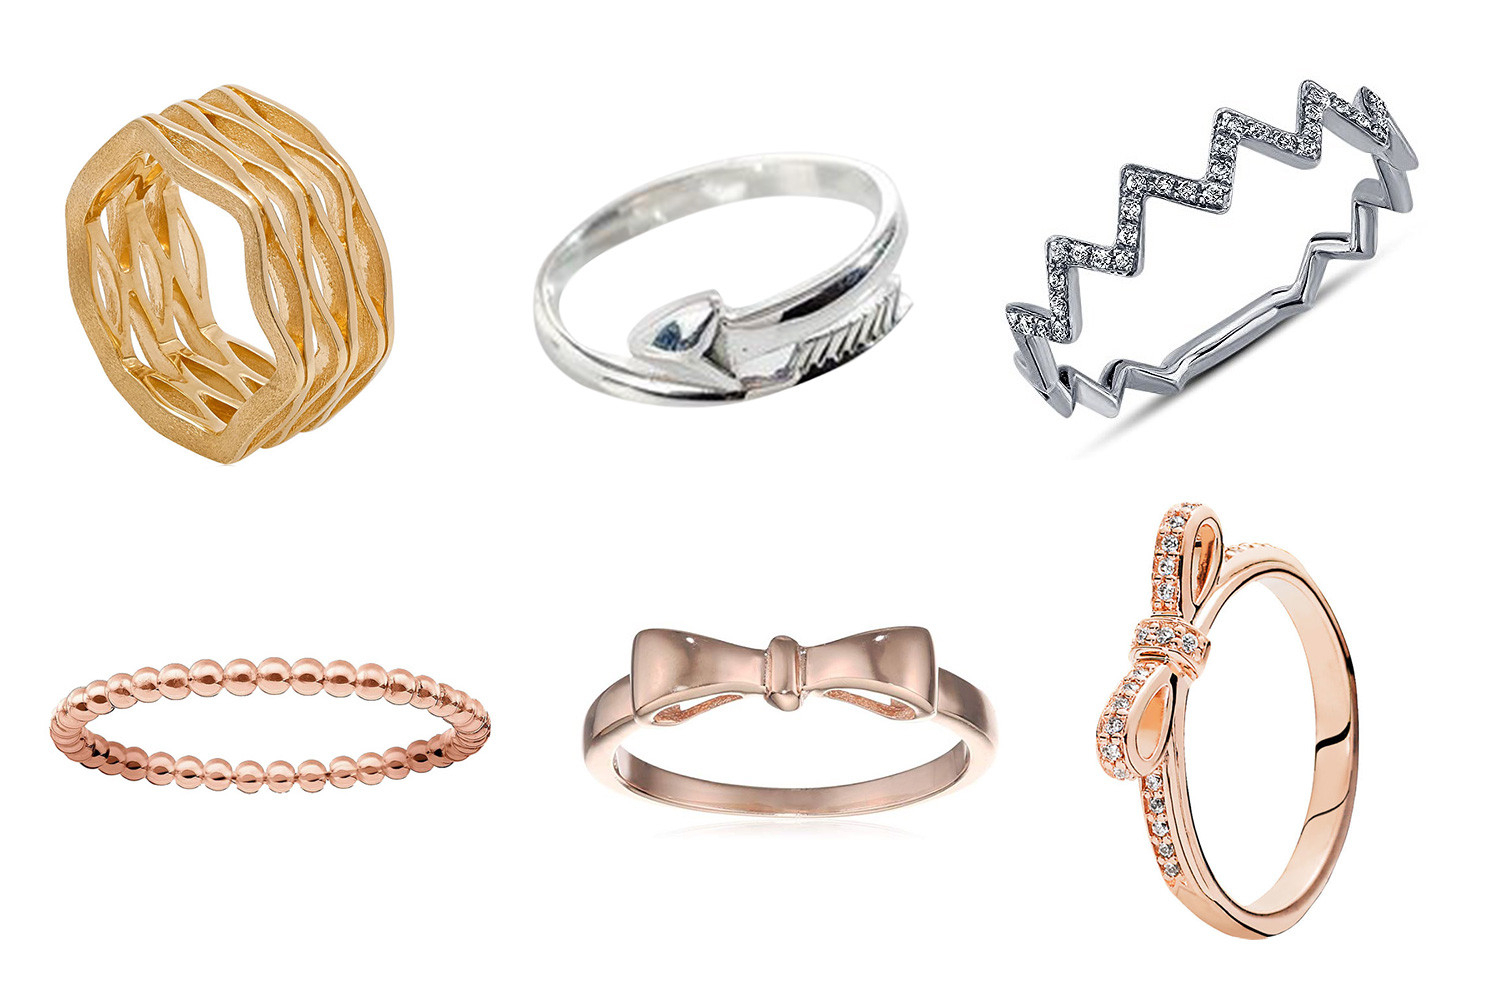 Cheap Pandora Rings 2019 | The Sun Uk Within 2017 Wheat Grains Wishbone Rings (View 10 of 25)